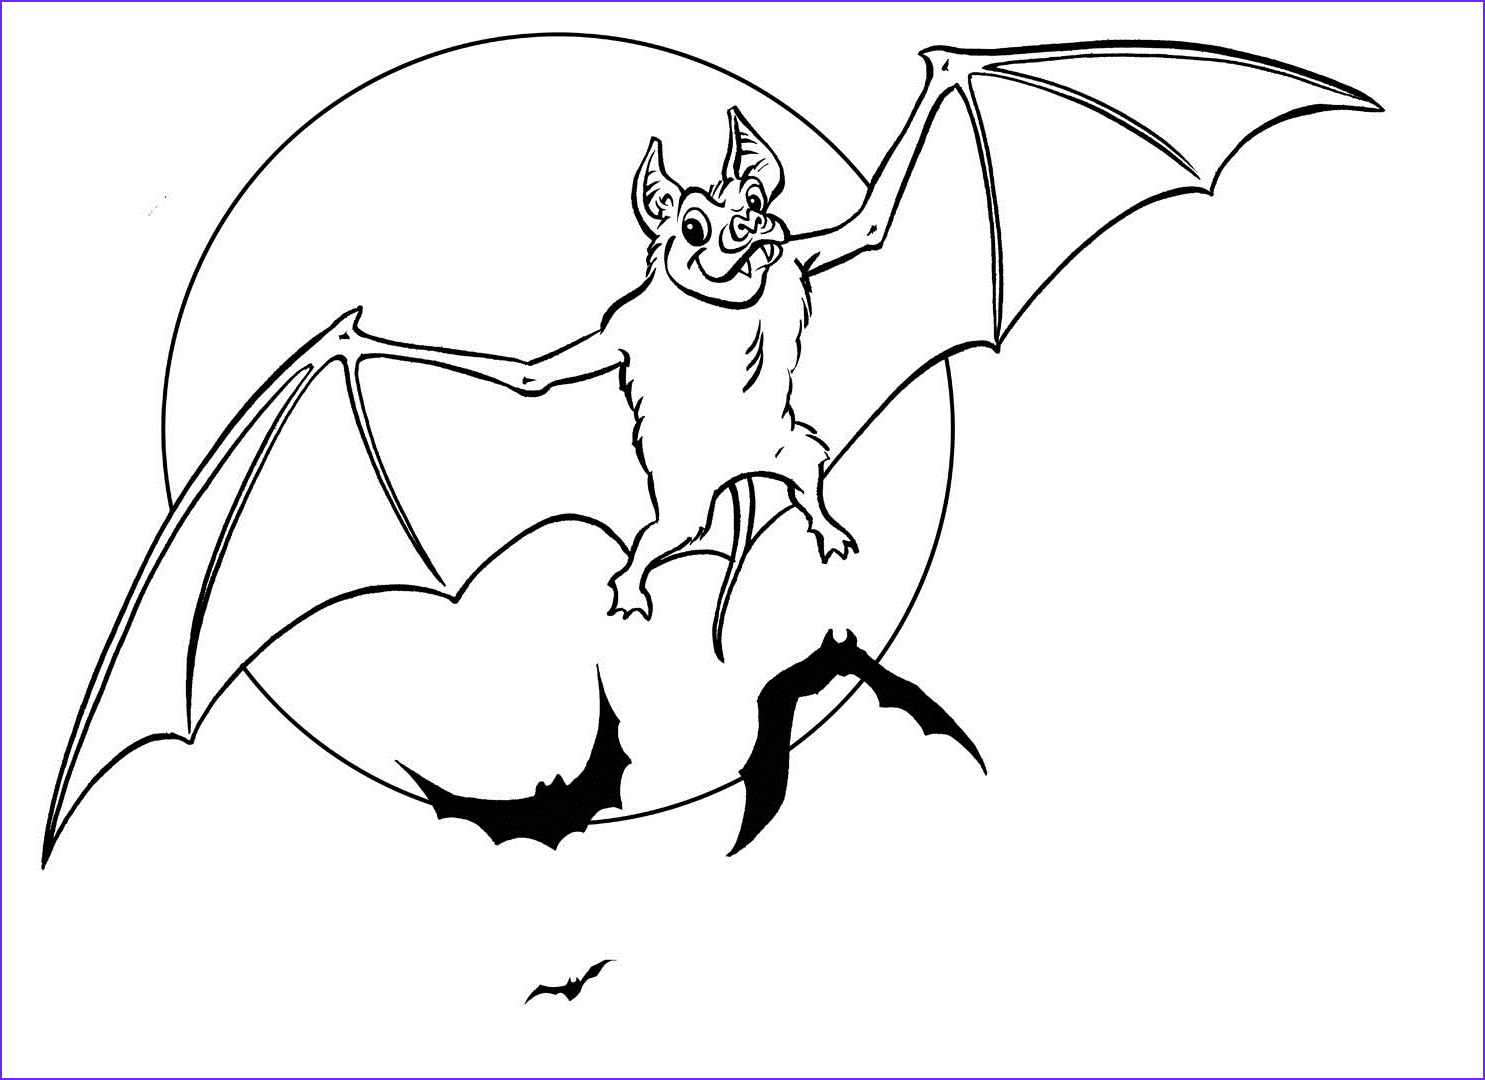 Bat Coloring Pages Beautiful Photos Free Printable Bat Coloring Pages for Kids